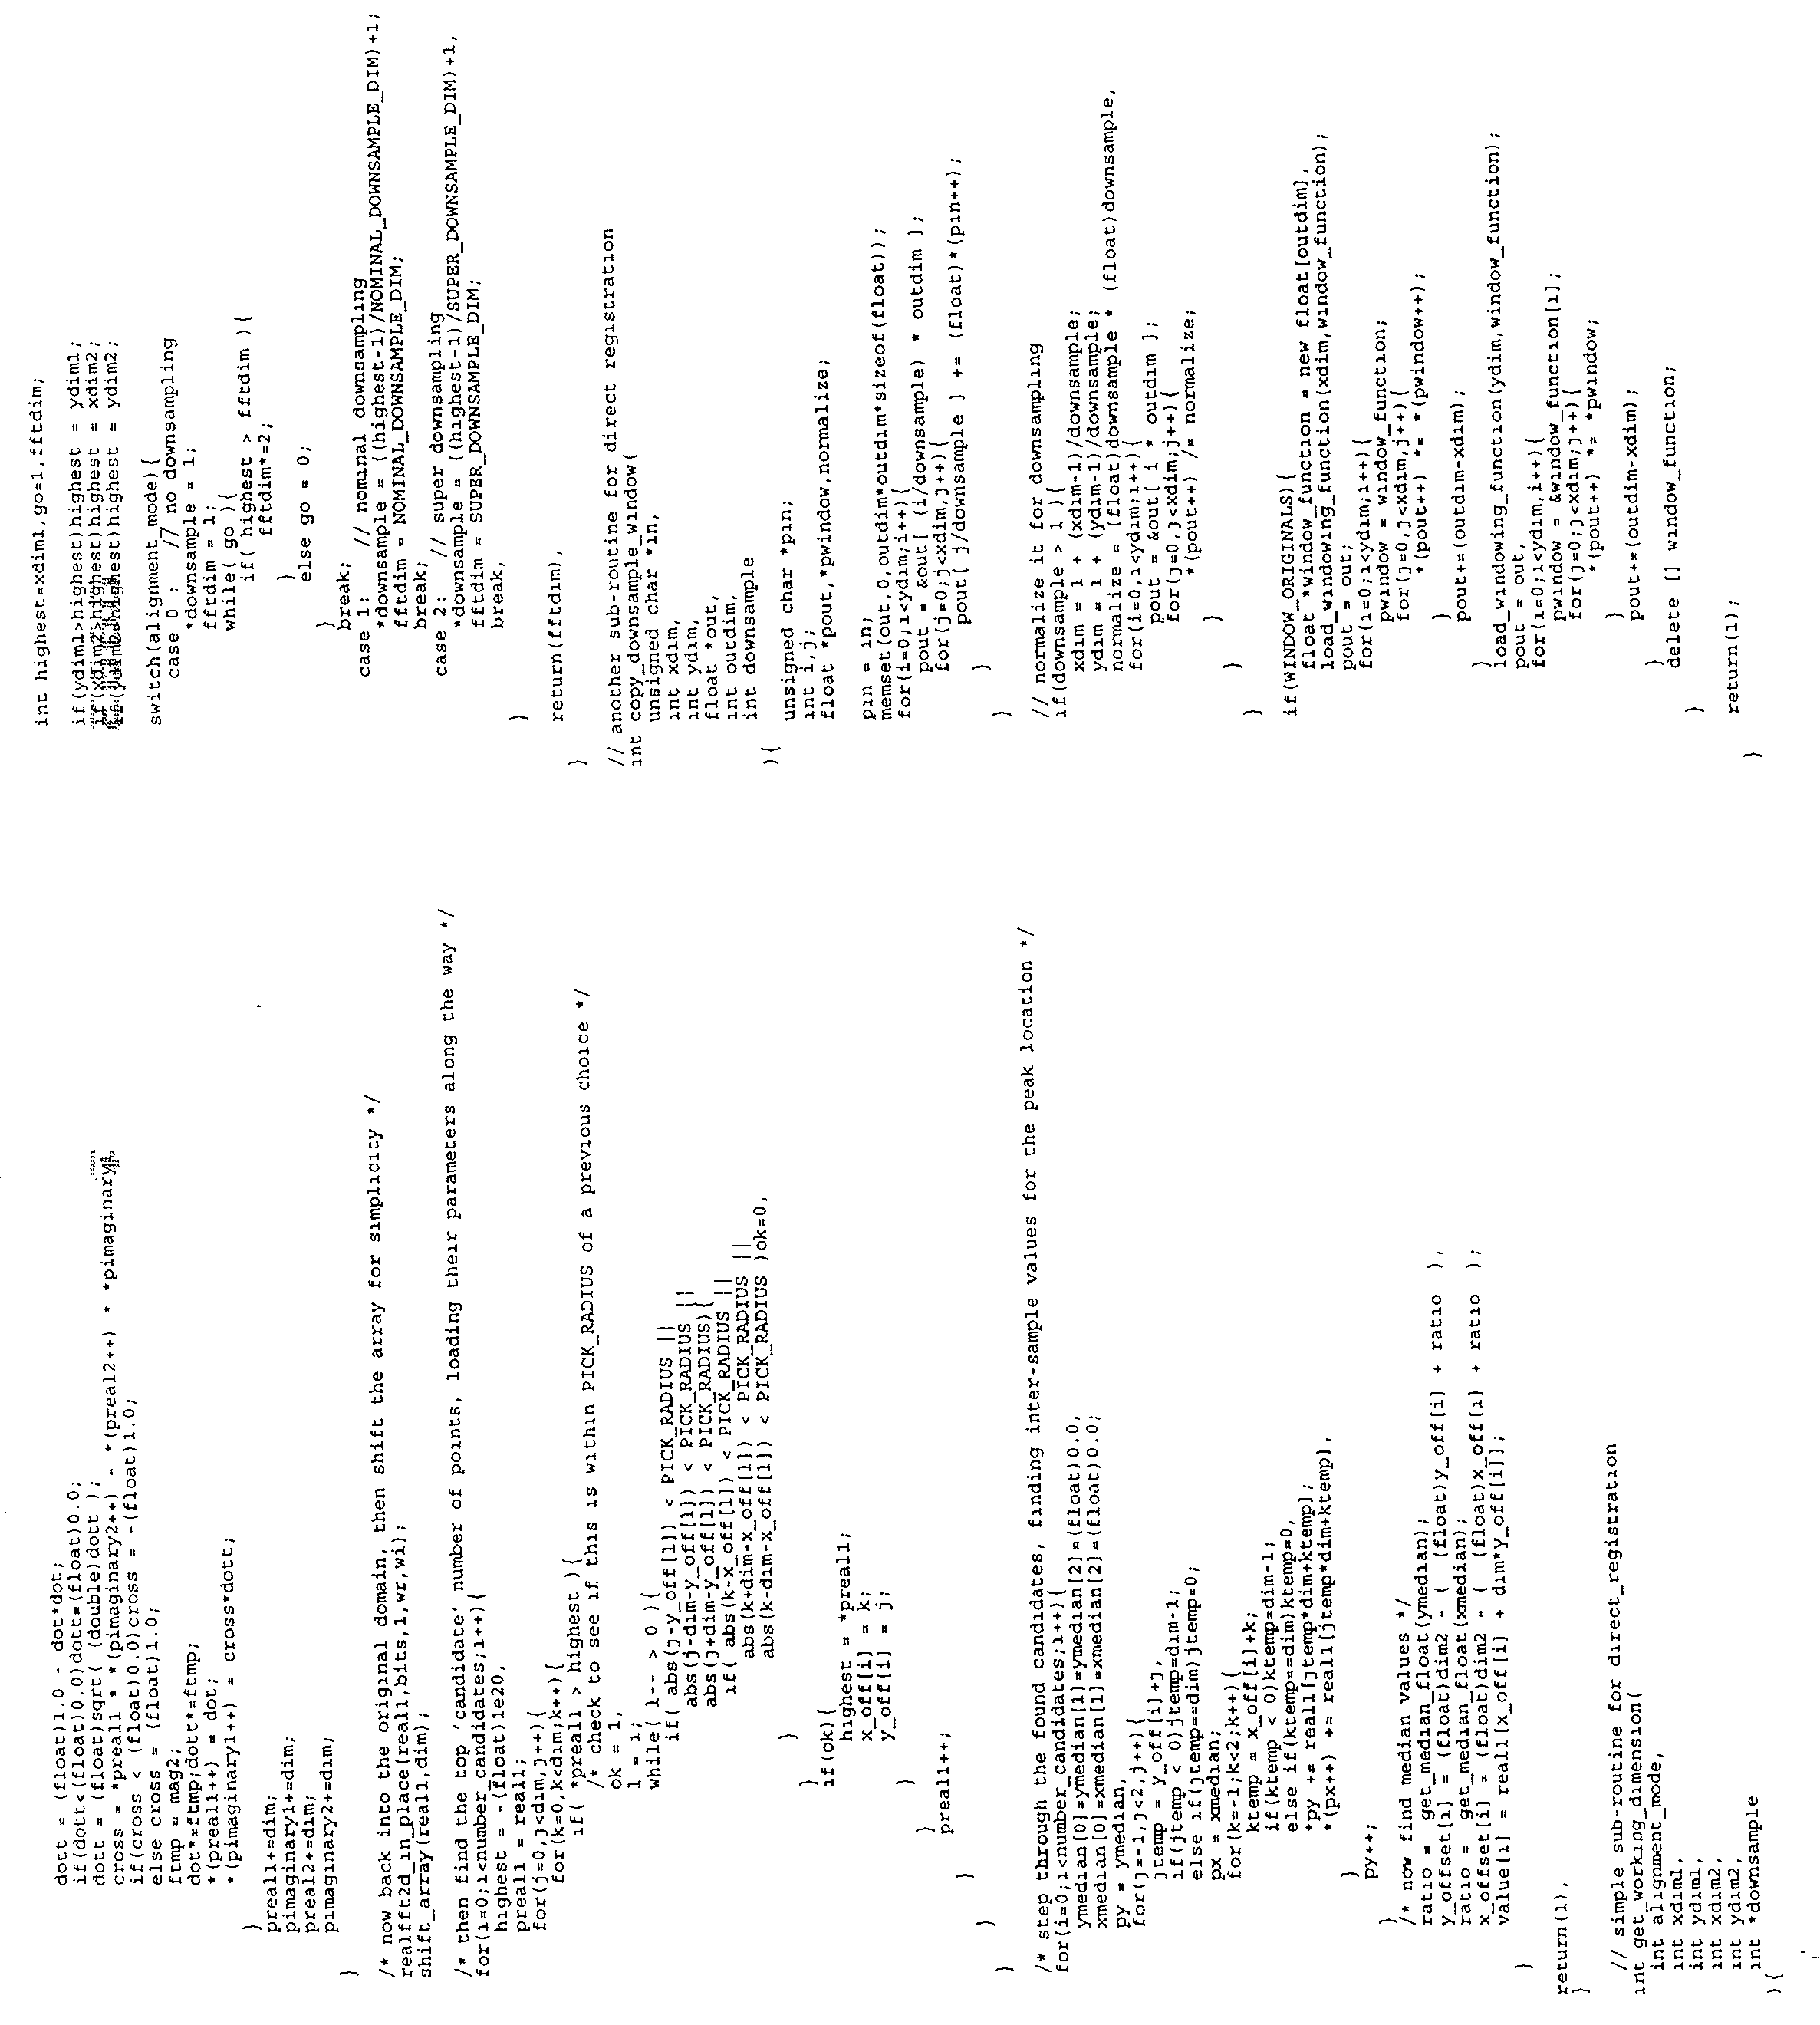 us20020118831a1 counteracting geometric distortions in